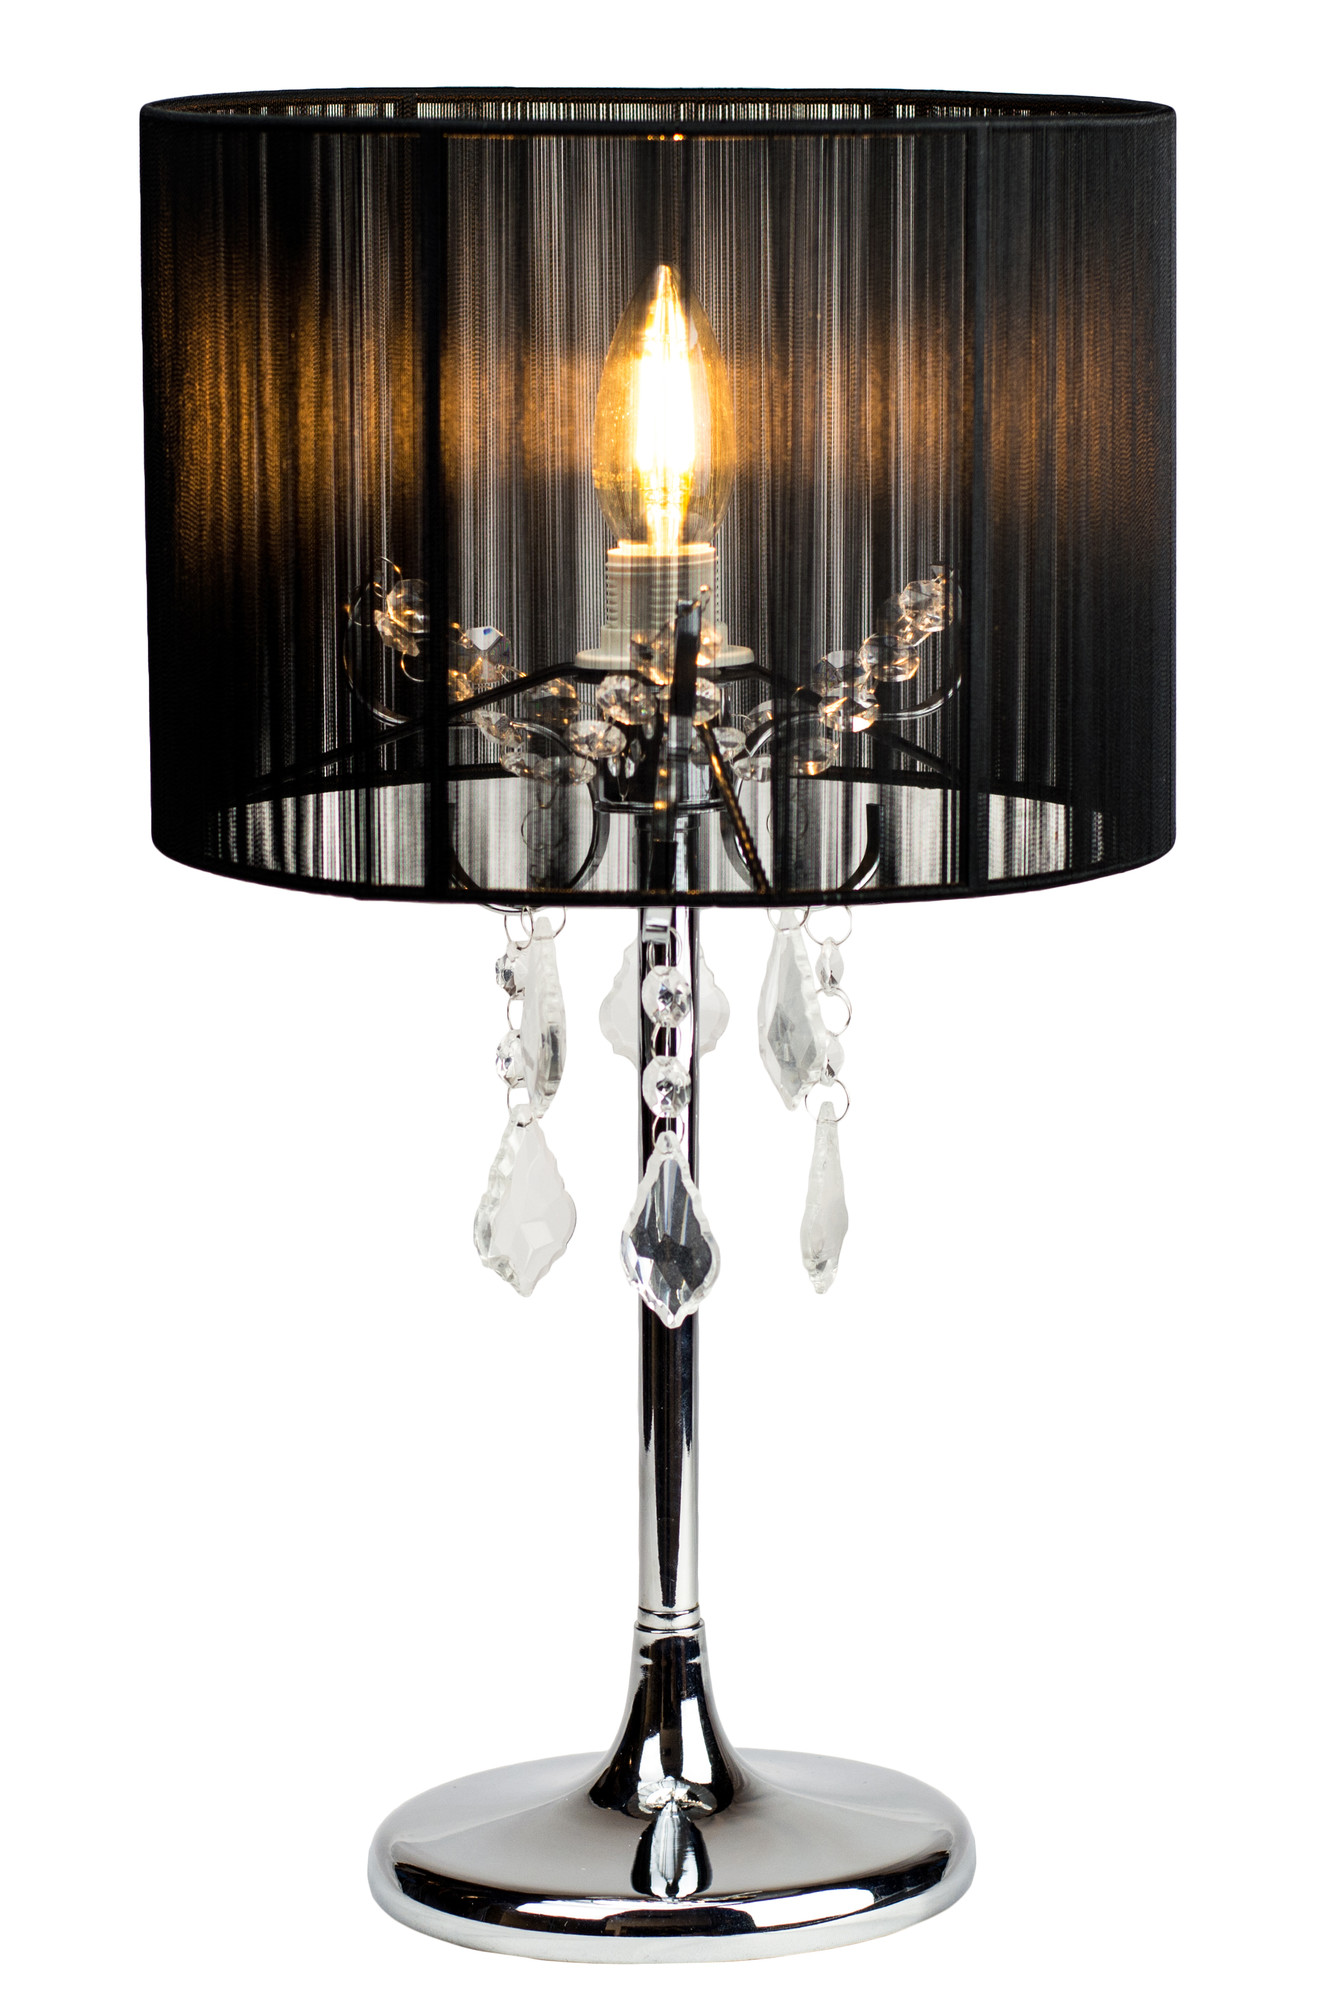 SKU #LELI1055 Paris Chrome Table Lamp With Black String Shade Is Also  Sometimes Listed Under The Following Manufacturer Numbers: LL 14 0035B